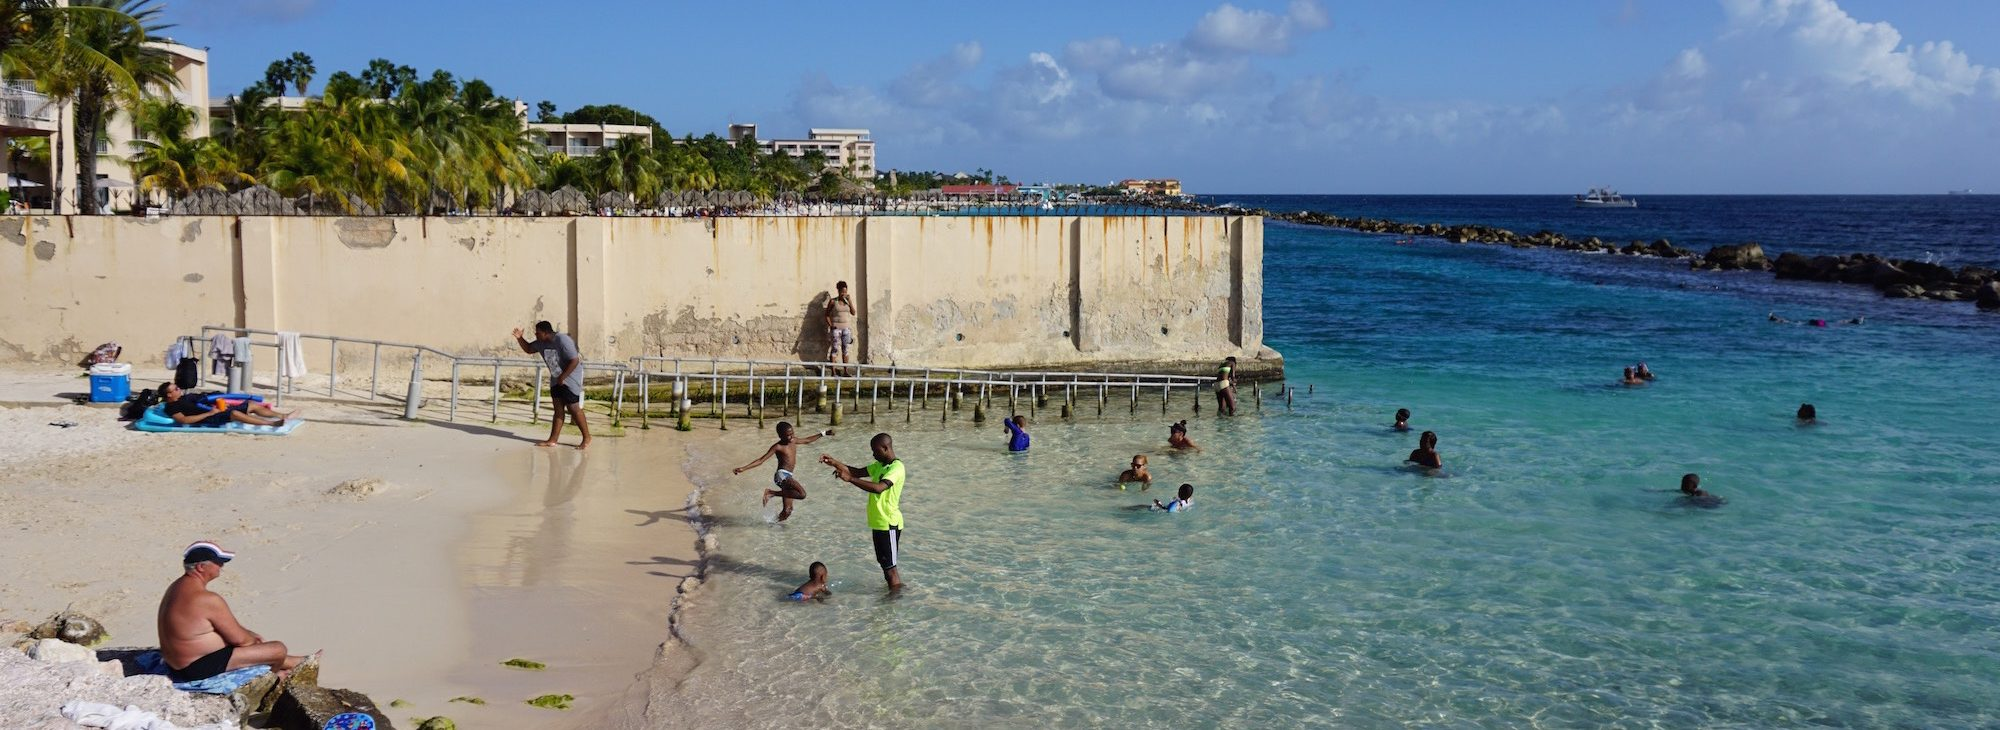 Best Free Beaches of Curacao